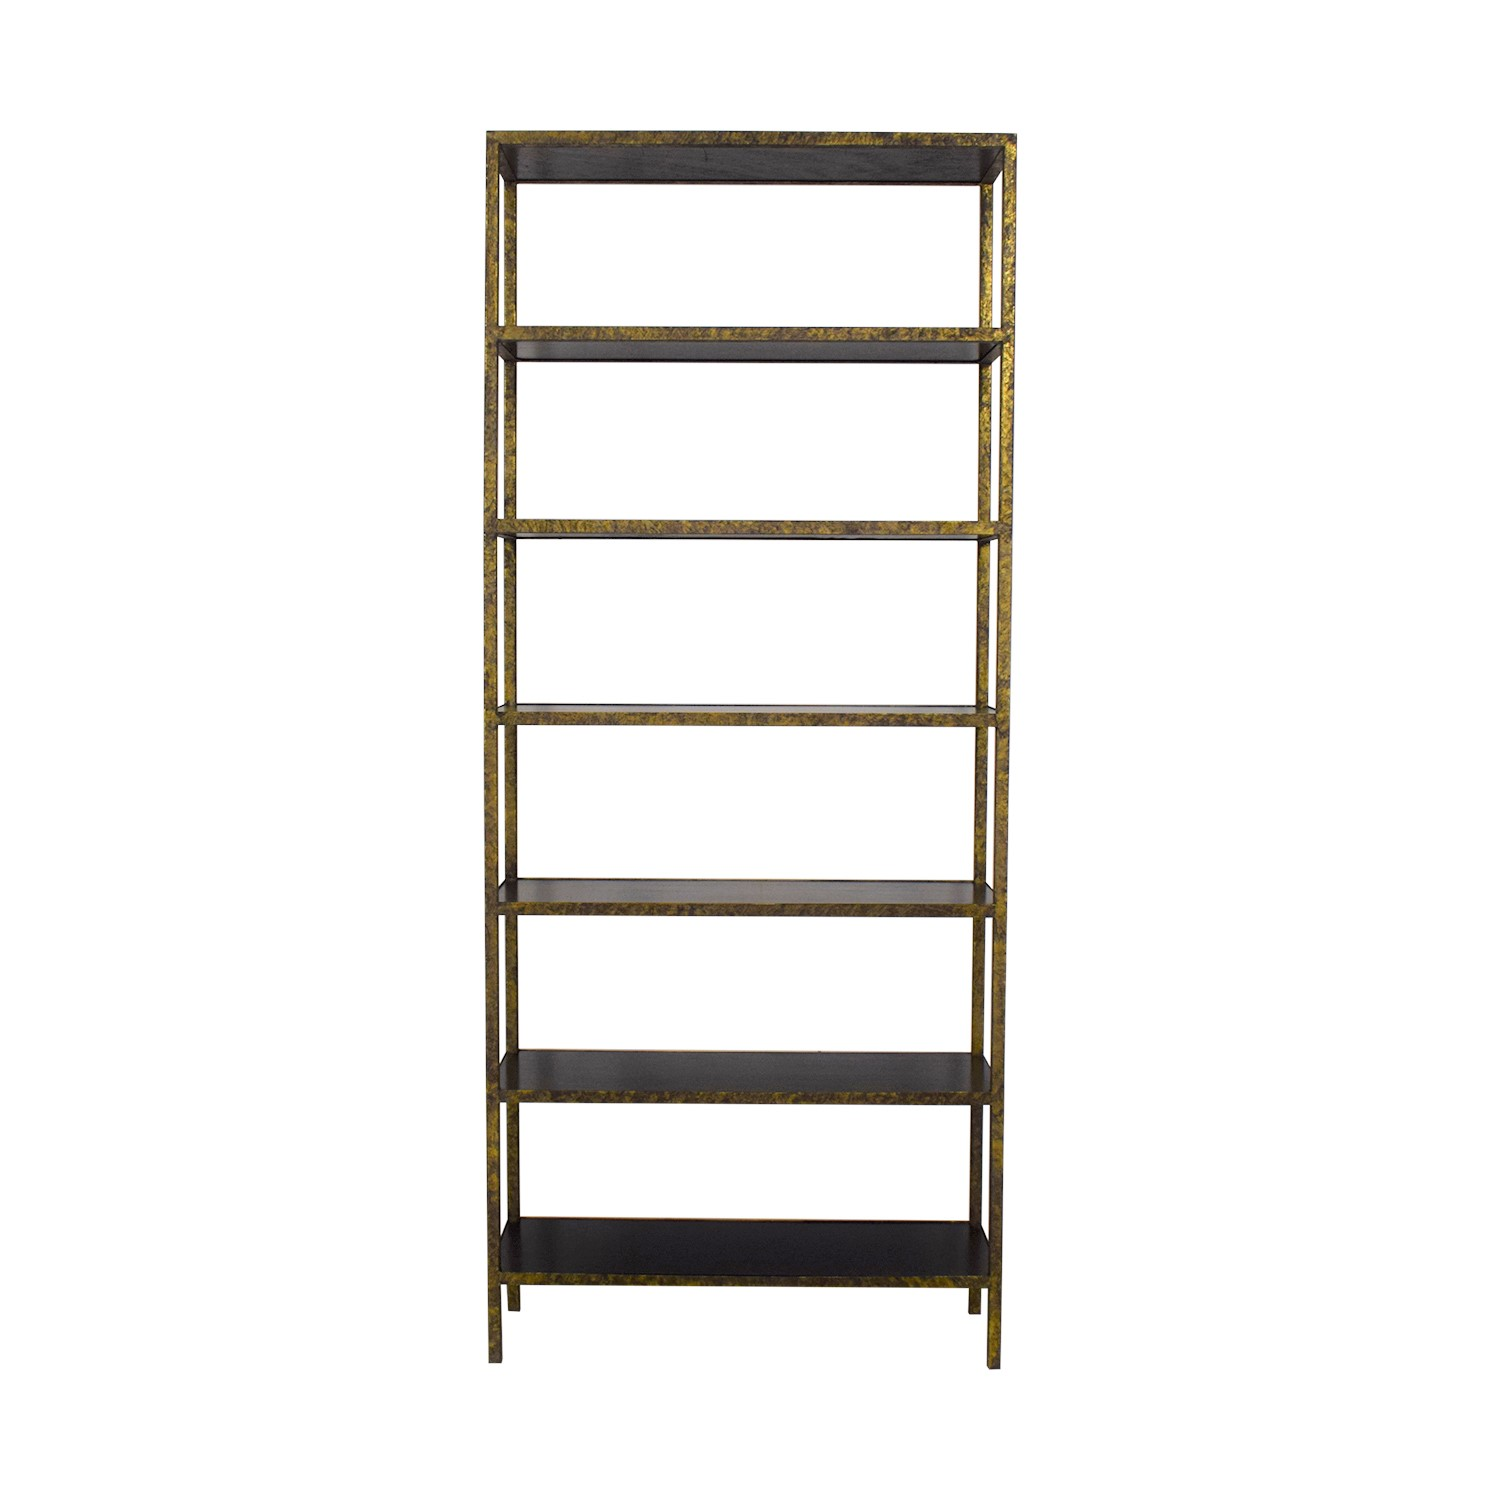 shop Oly Studio Stella Shelf Oly Studio Bookcases & Shelving